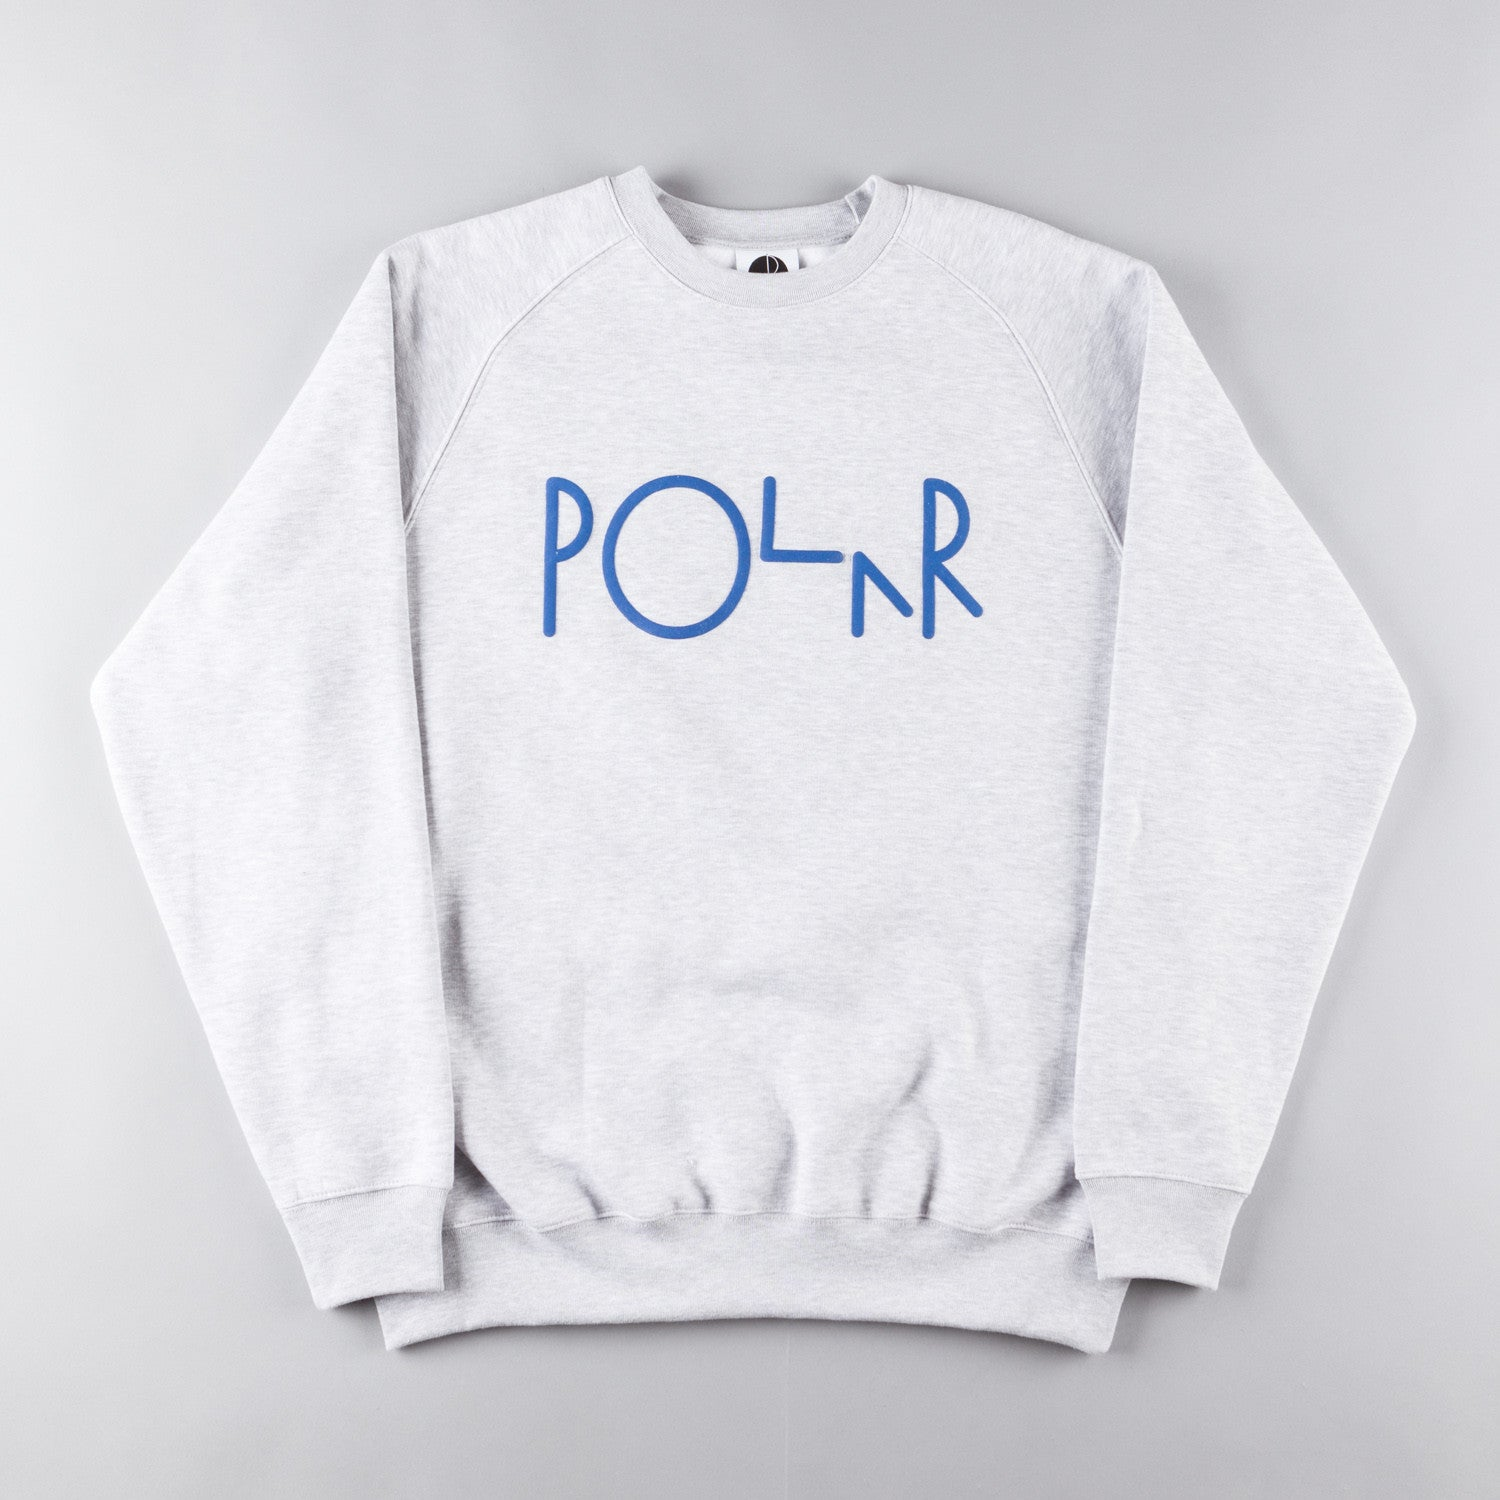 Polar Basic Sweatshirt - Heather Grey